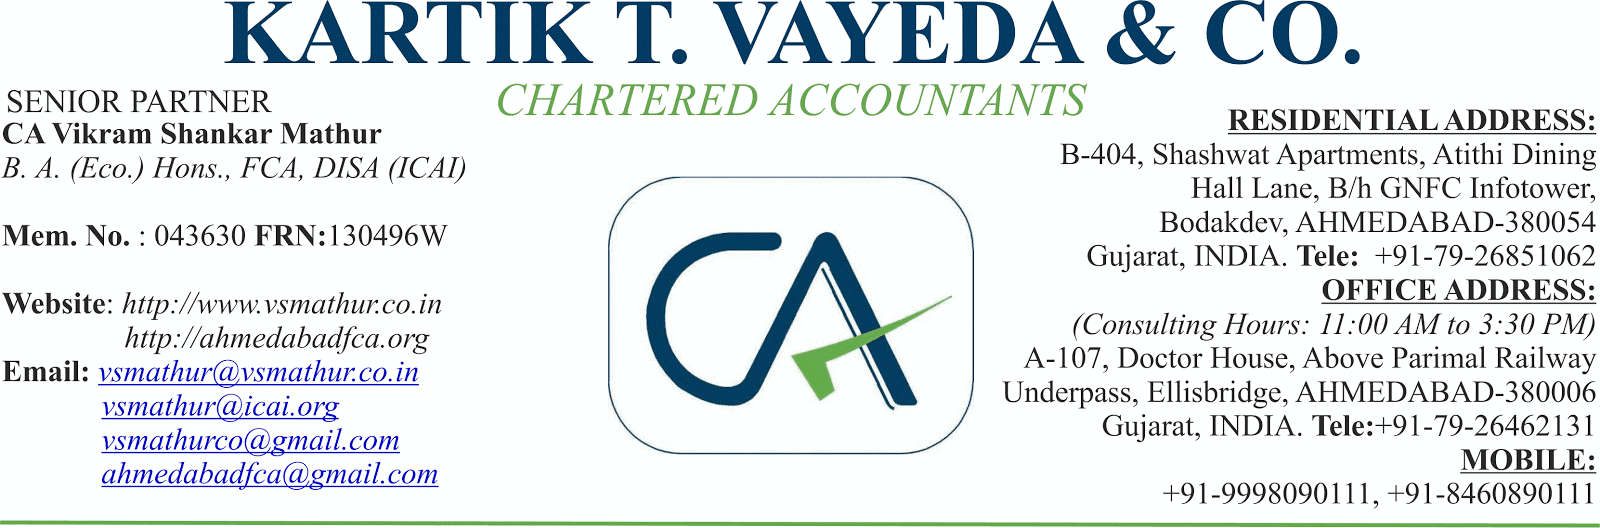 Kartik T. Vayeda & Co., Chartered Accountants